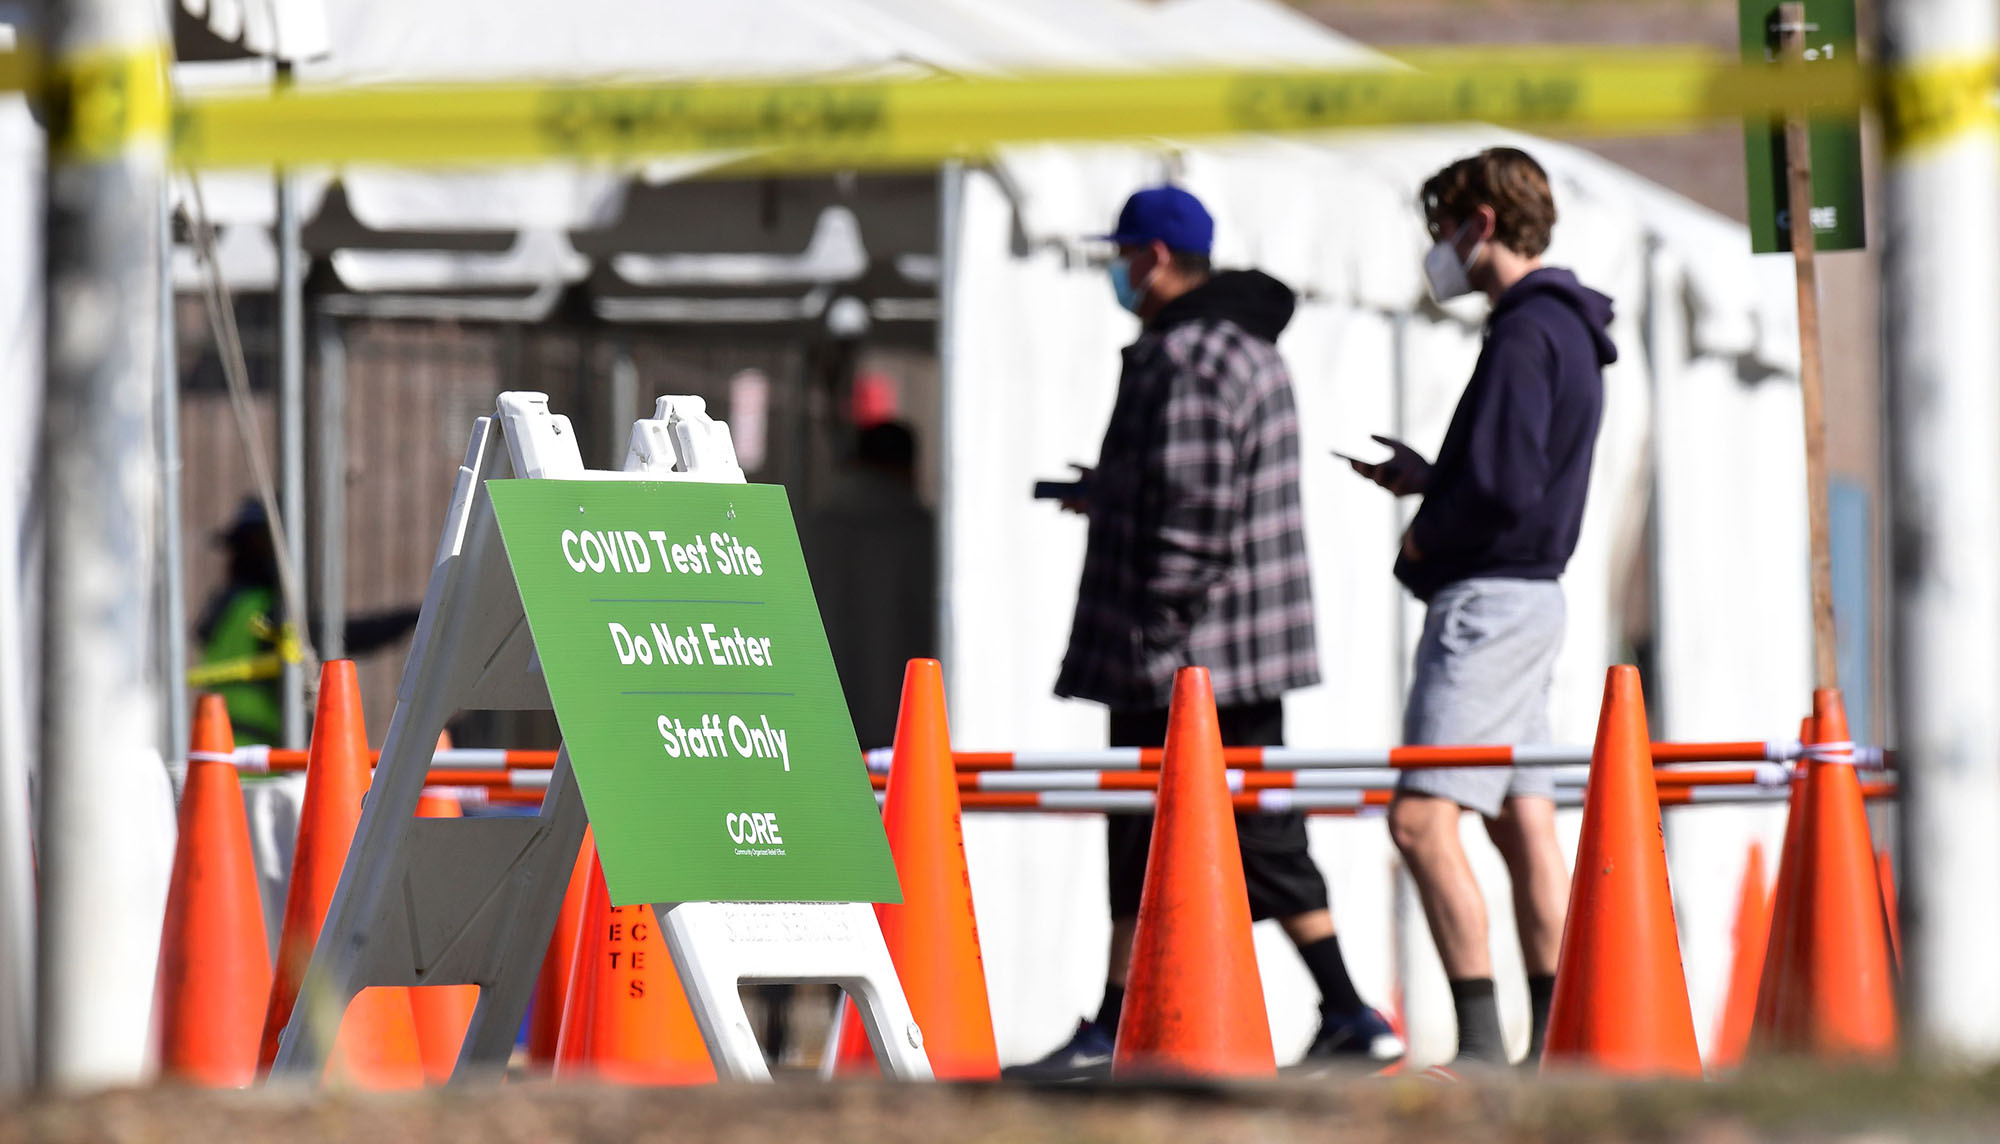 People wait in line at a coronavirus test site in Los Angeles, California, on November 10.